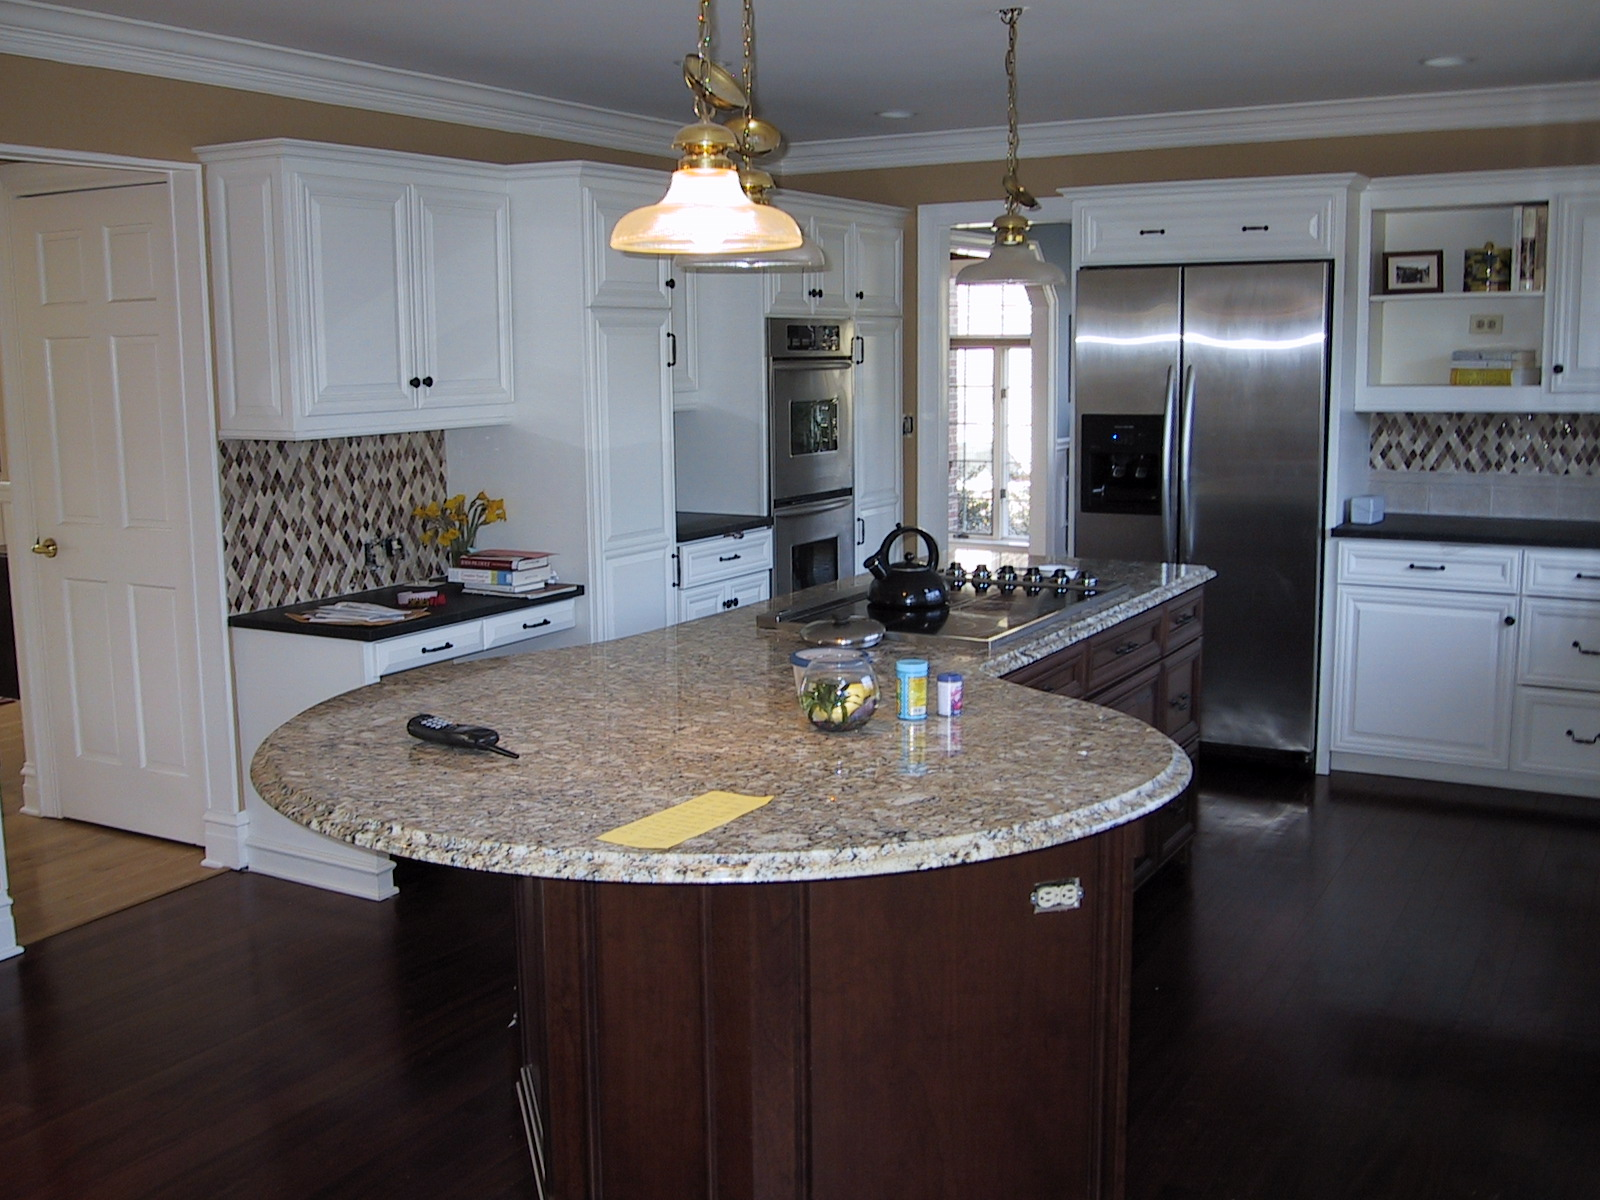 Cabinet Refacing Cost - Kitchen Craftsman - Geneva, Illinois